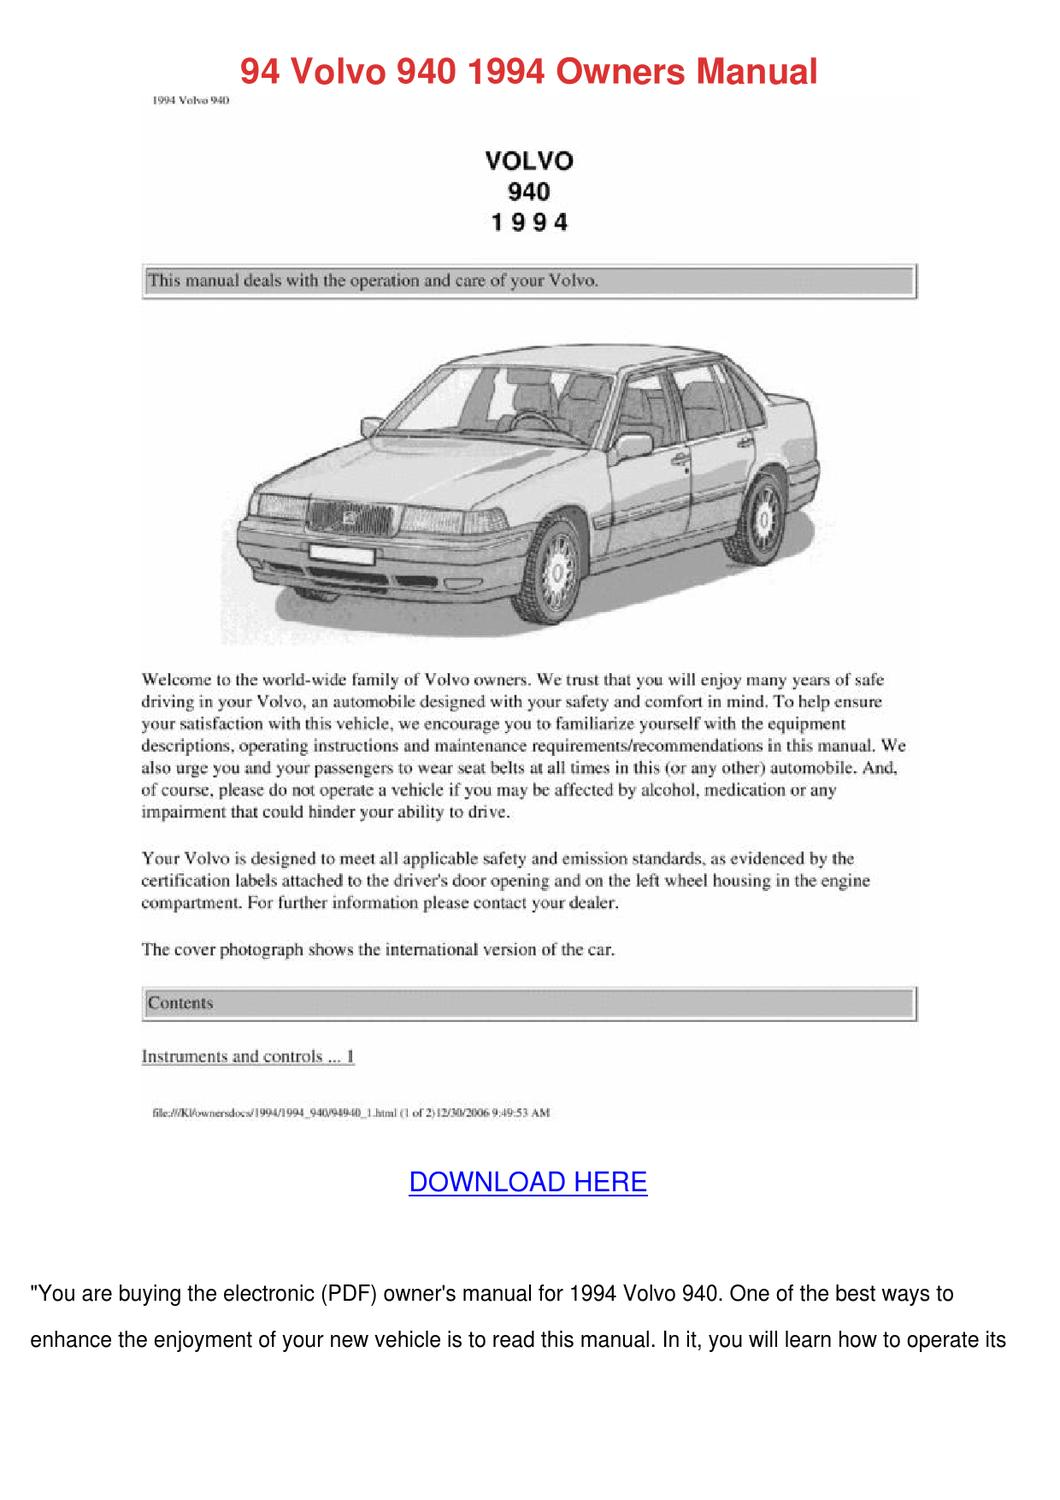 94 Volvo 940 1994 Owners Manual by ElaineCavazos - issuu